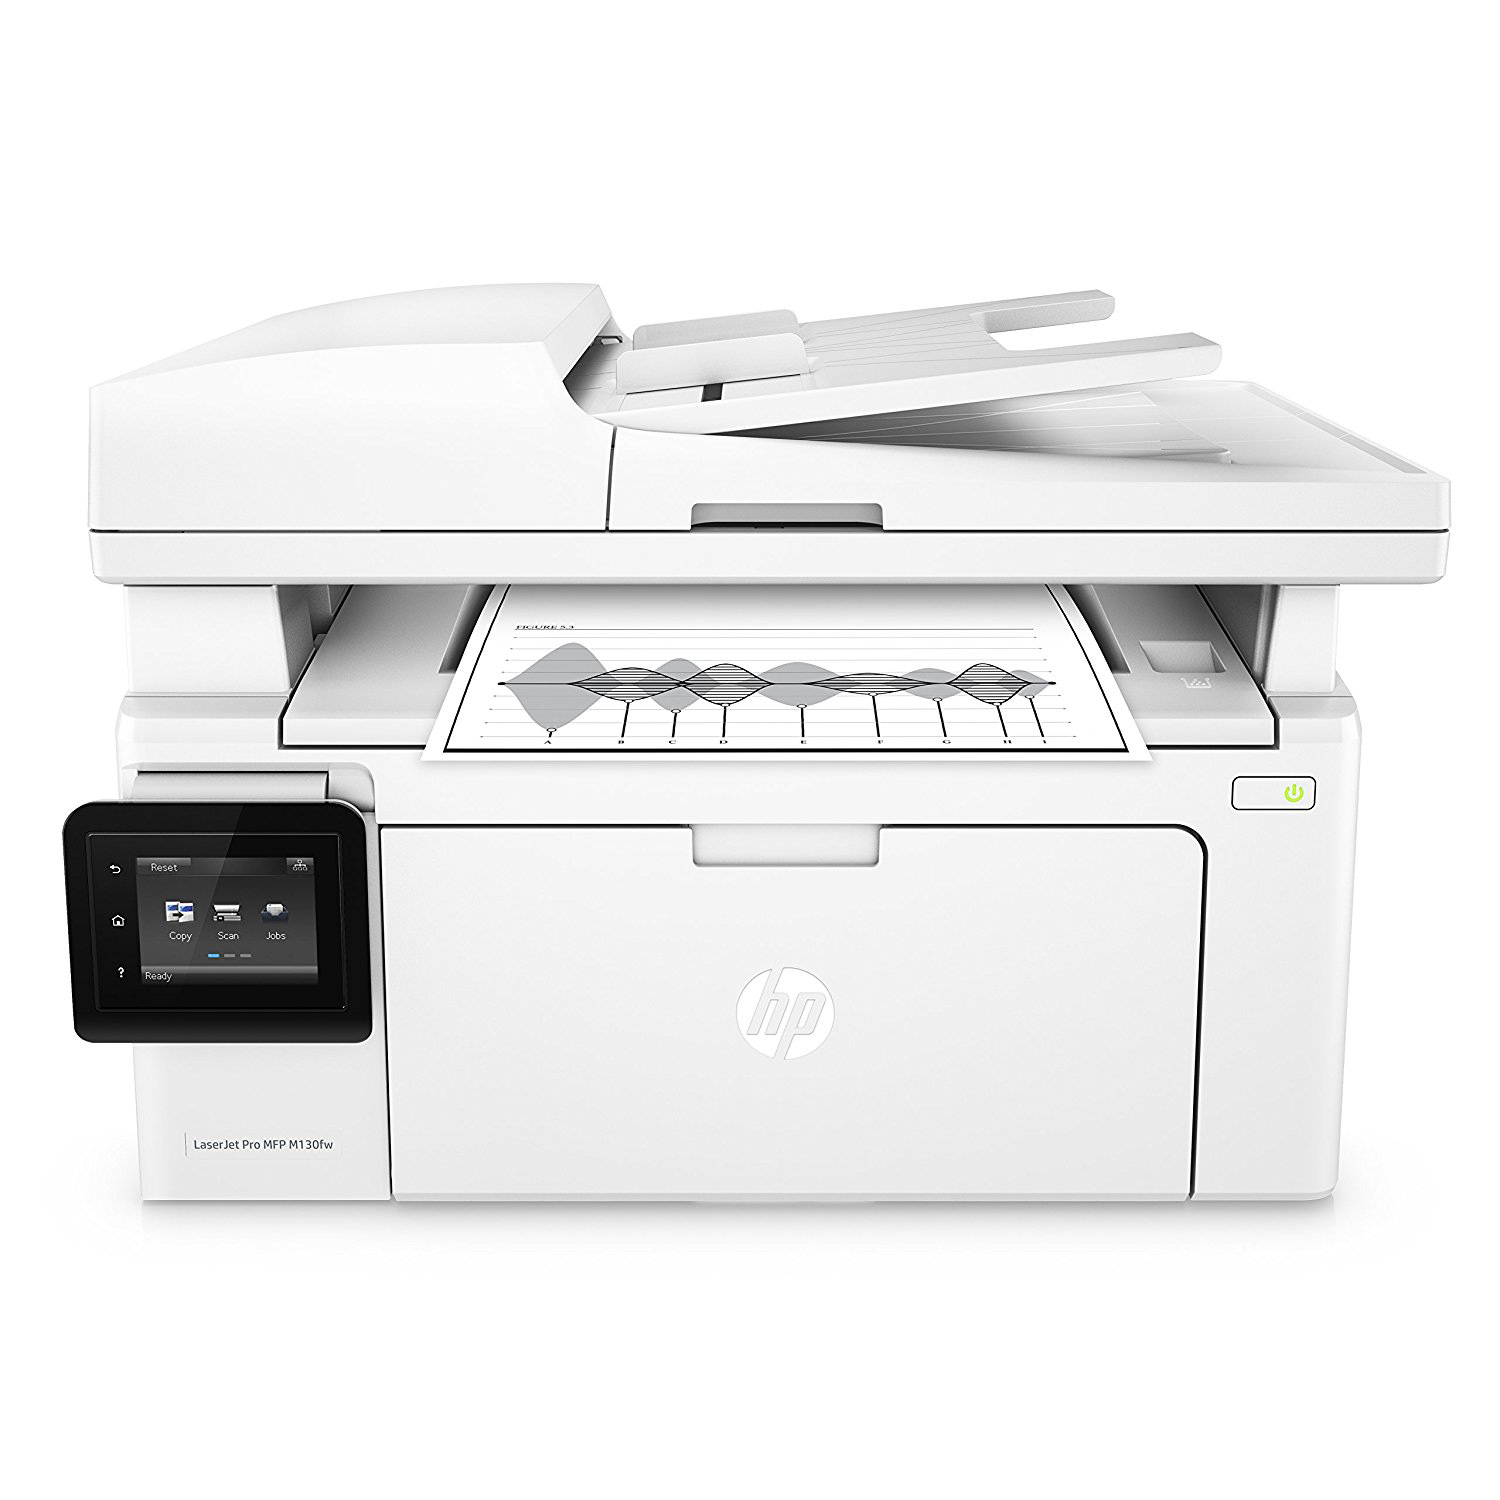 hp laserjet pro mfp m130fw imprimante multifonction hp. Black Bedroom Furniture Sets. Home Design Ideas